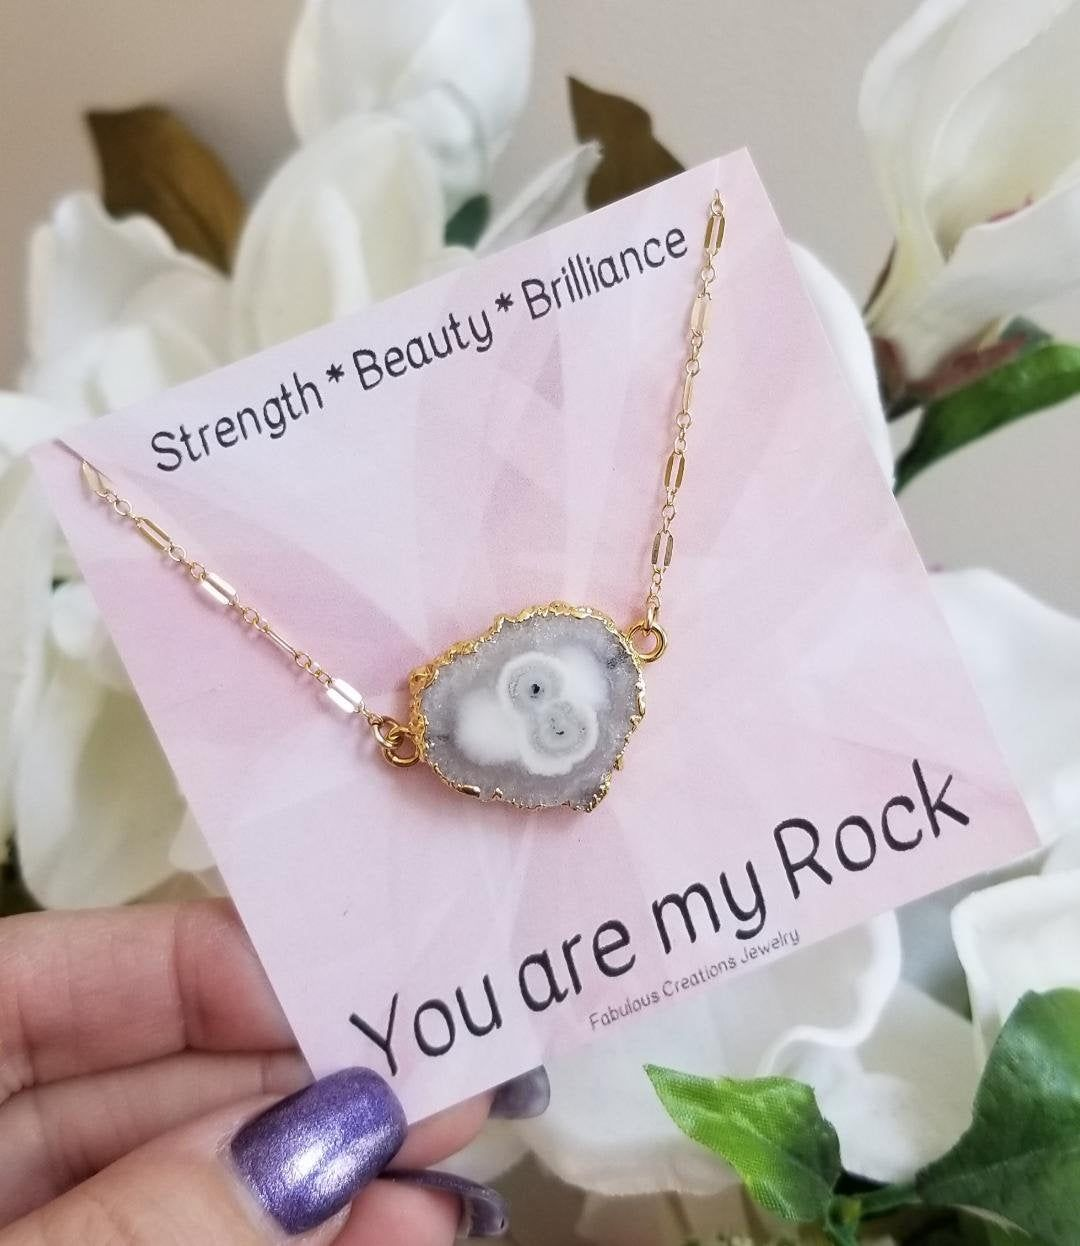 29++ You are my rock jewelry ideas